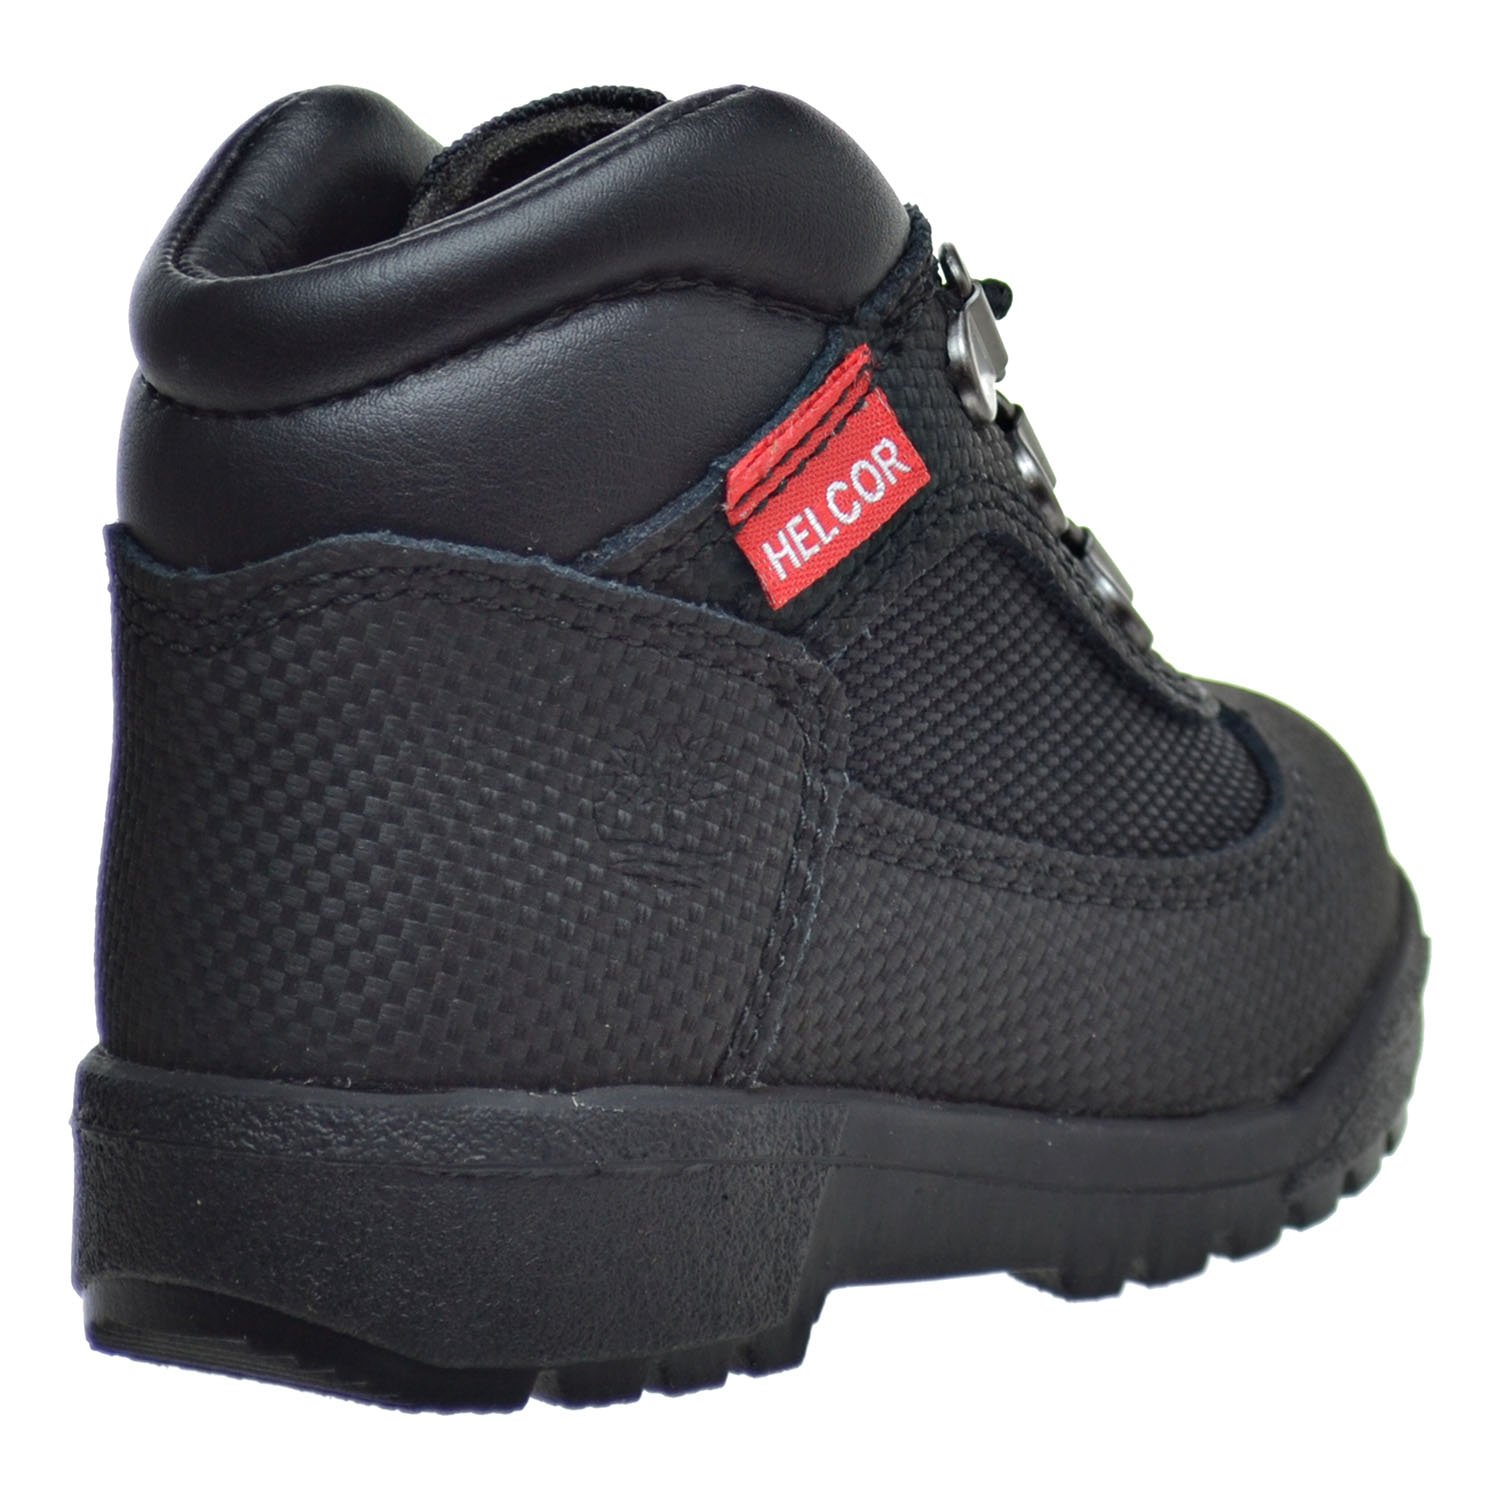 Timberland Toddler Field Boots Black Helcor tb0a1a4c